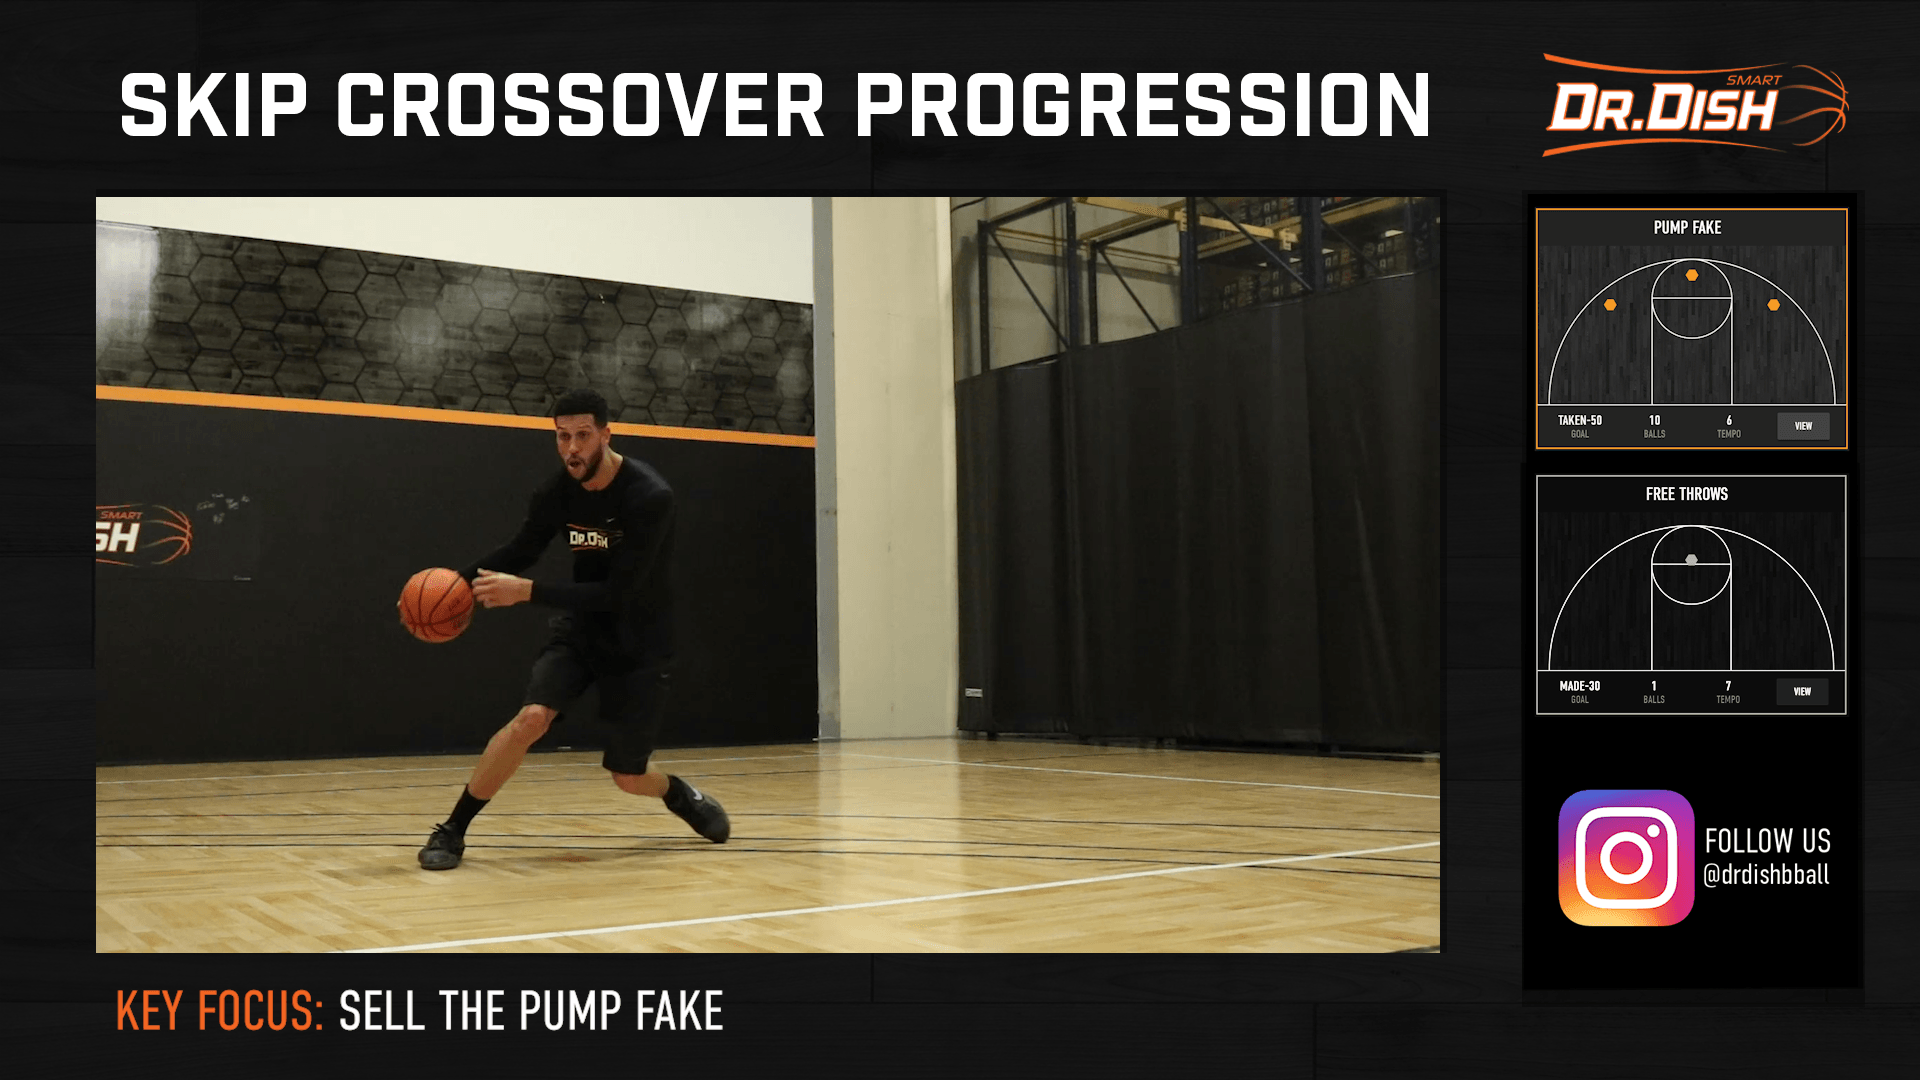 Basketball Drills: Skip Crossover Progression Skill Builder Workout